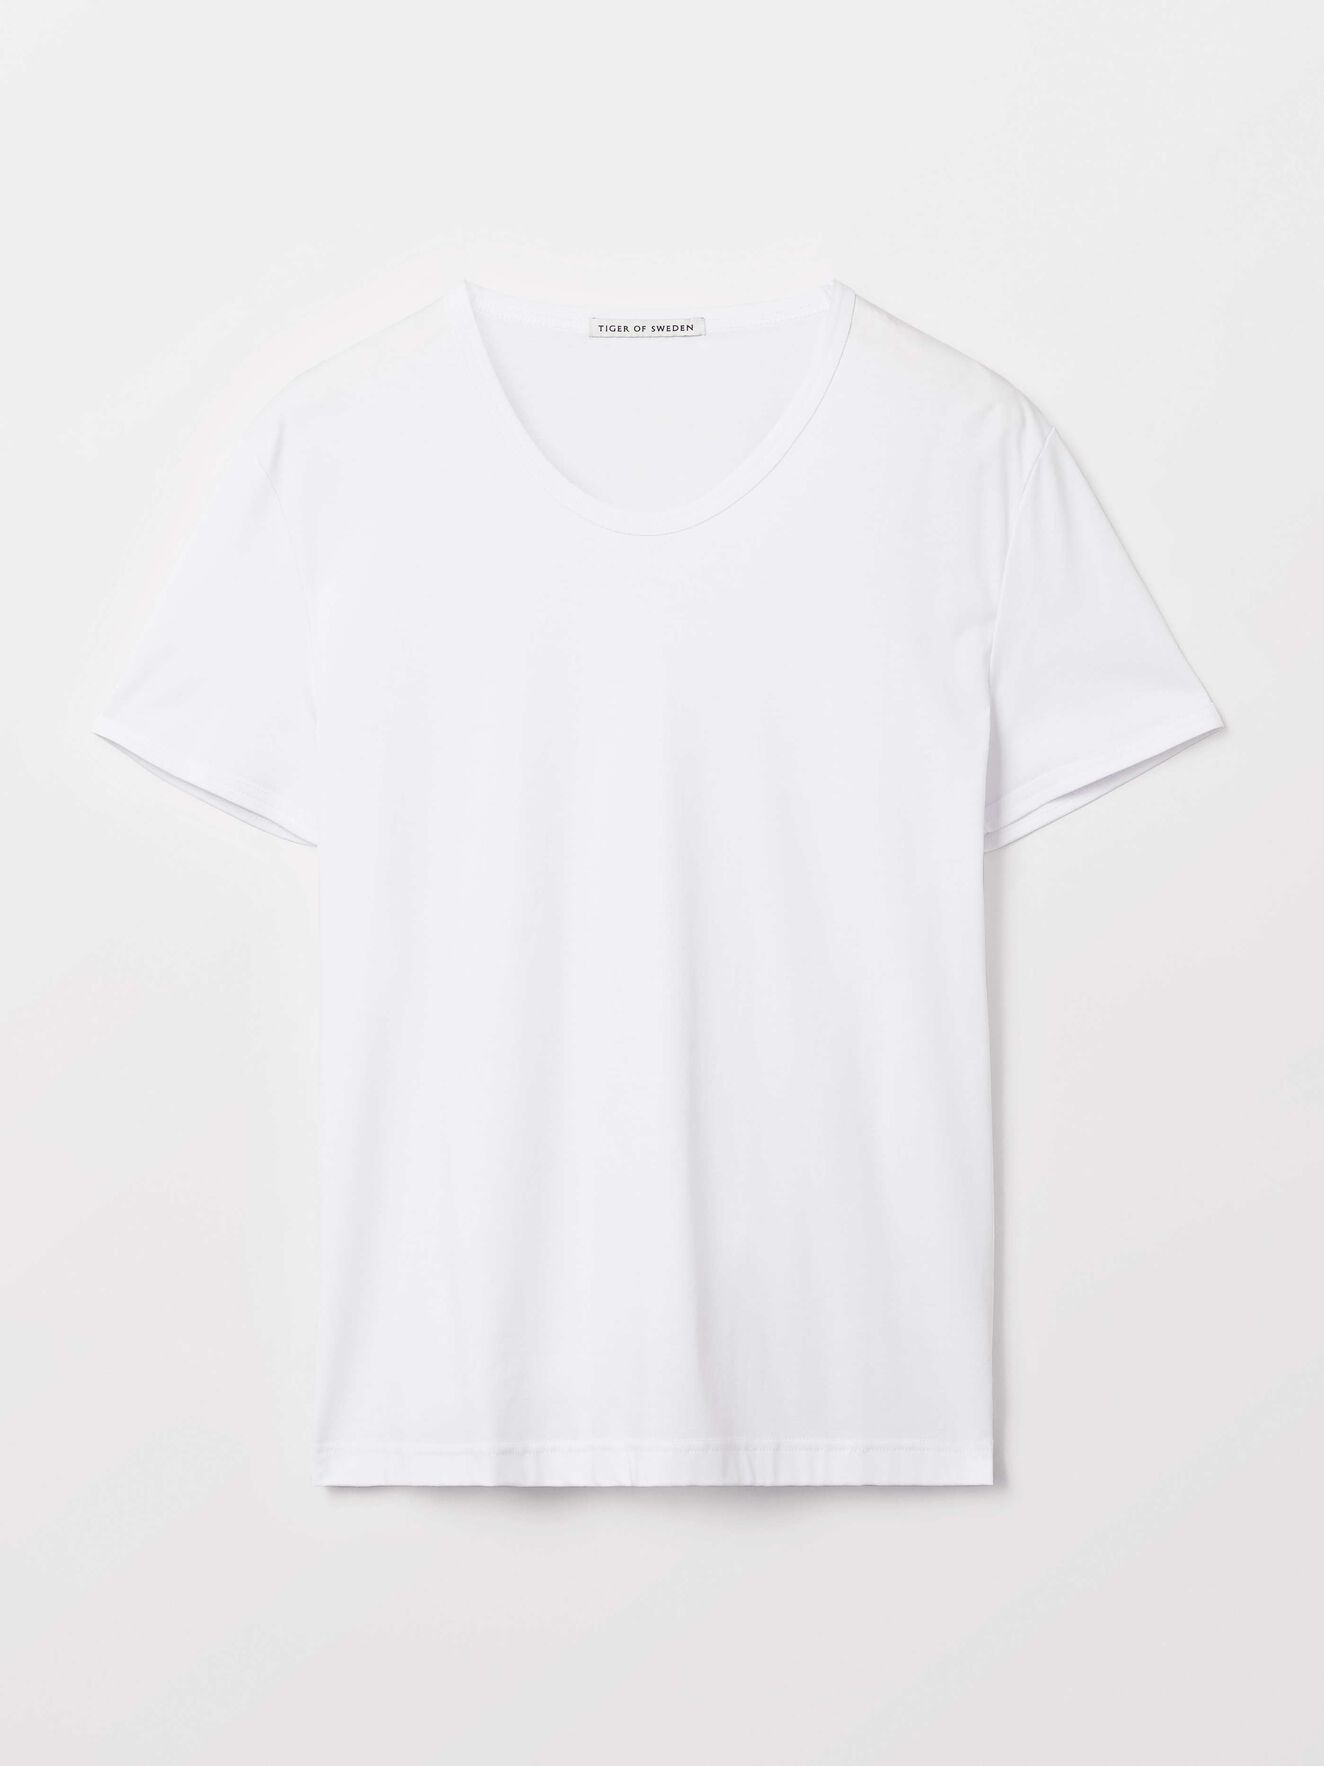 Daxx T-Shirt in Pure white from Tiger of Sweden